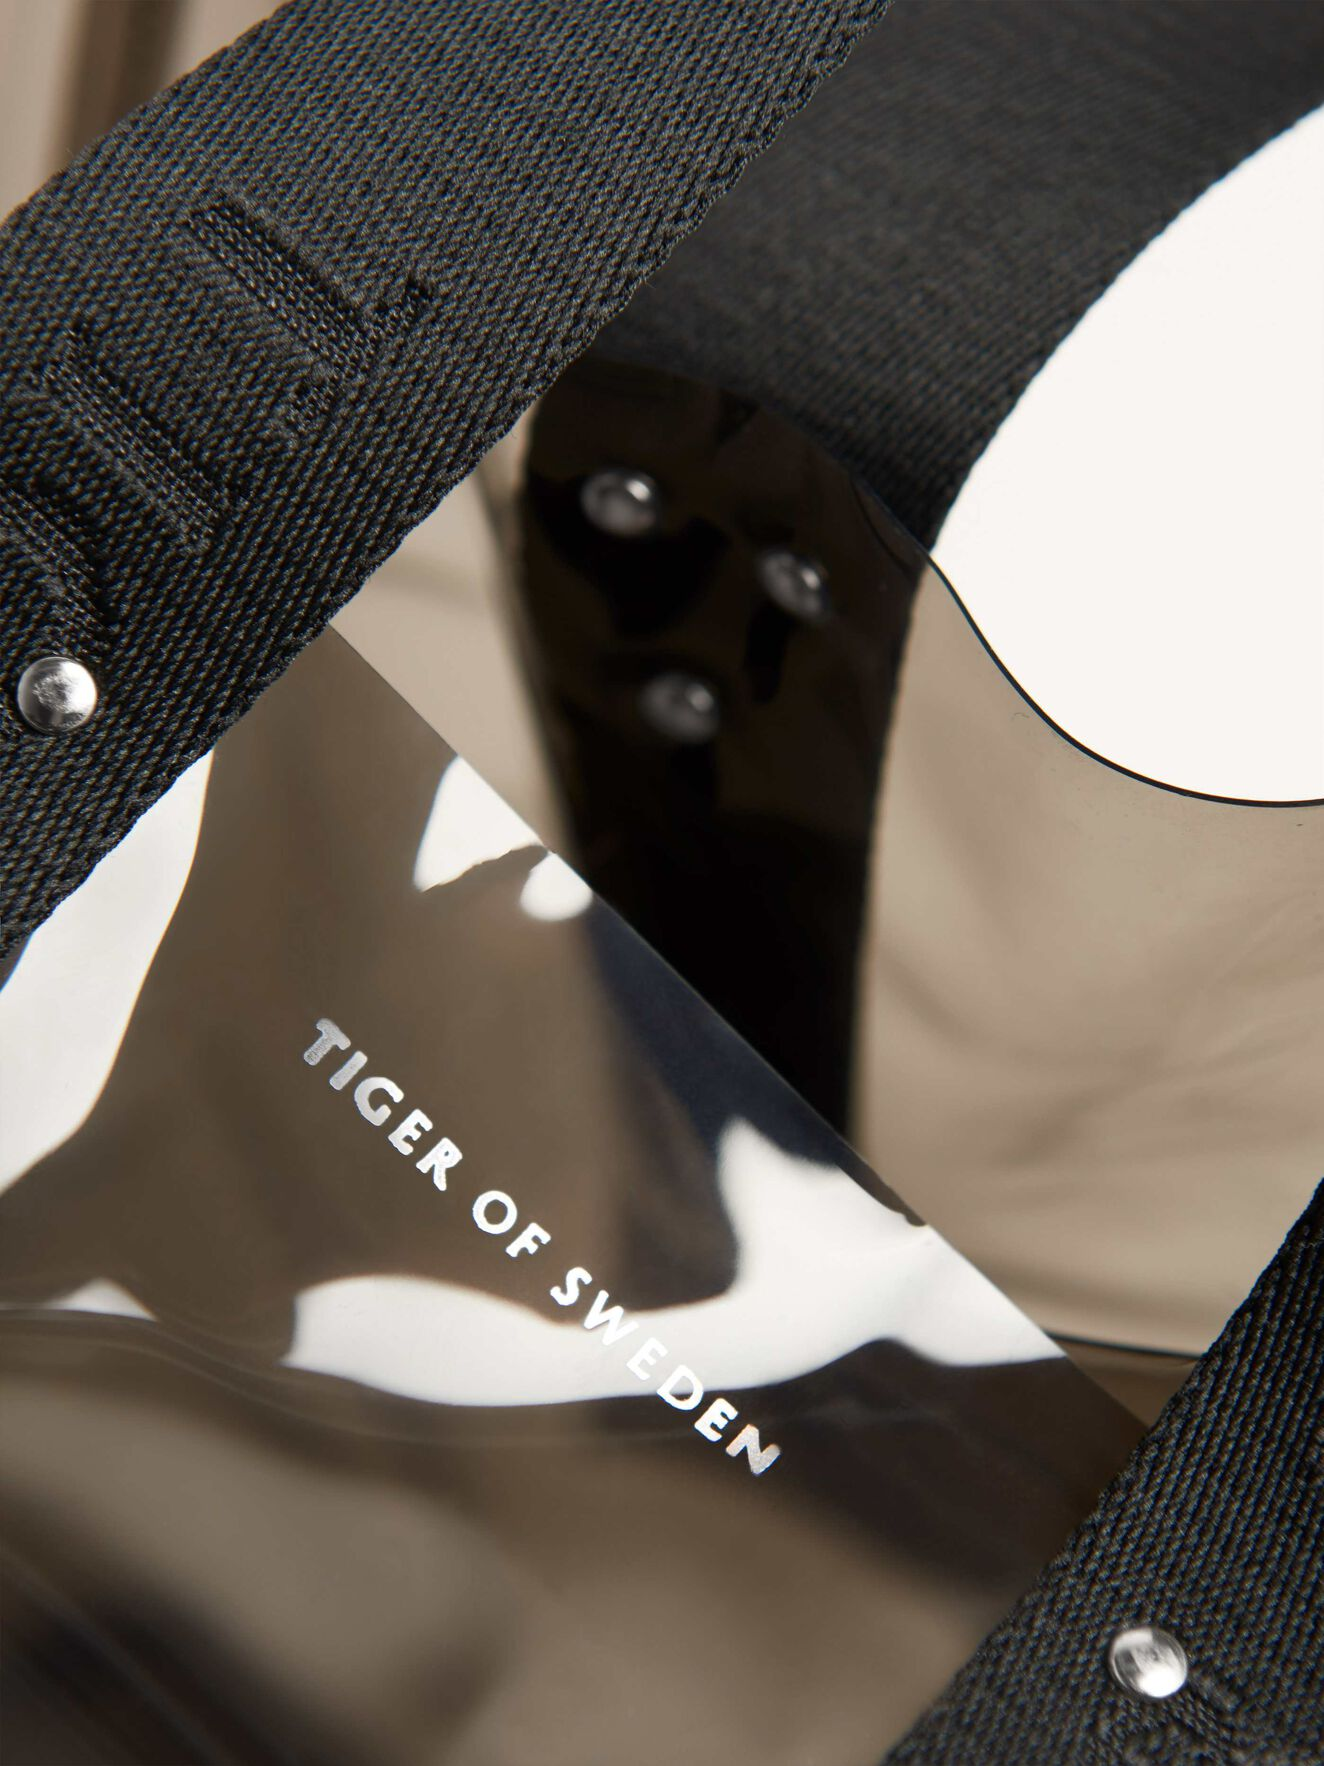 Tund Bag in Black from Tiger of Sweden